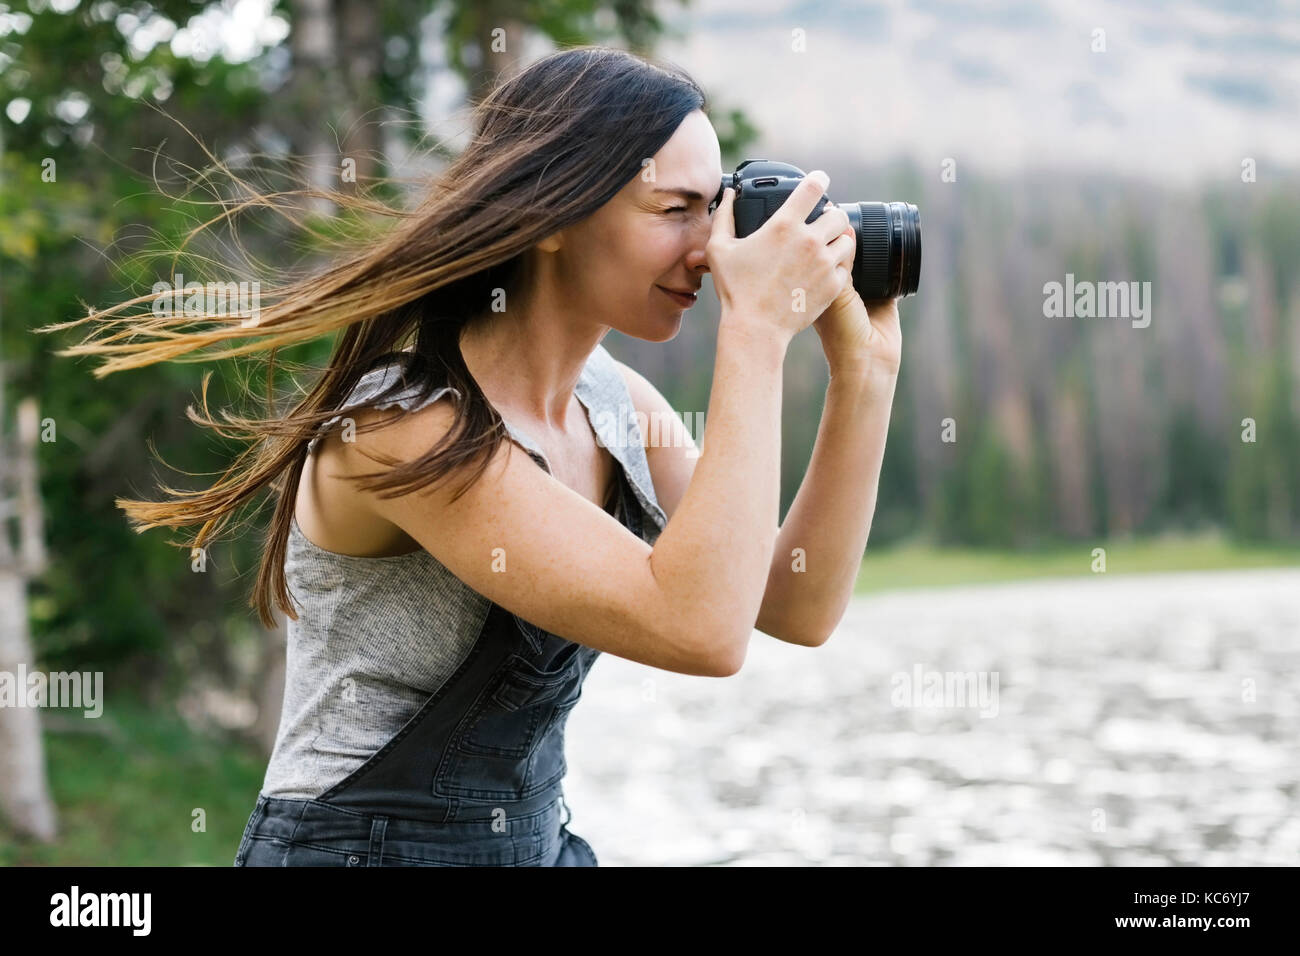 Woman taking pictures by lake - Stock Image